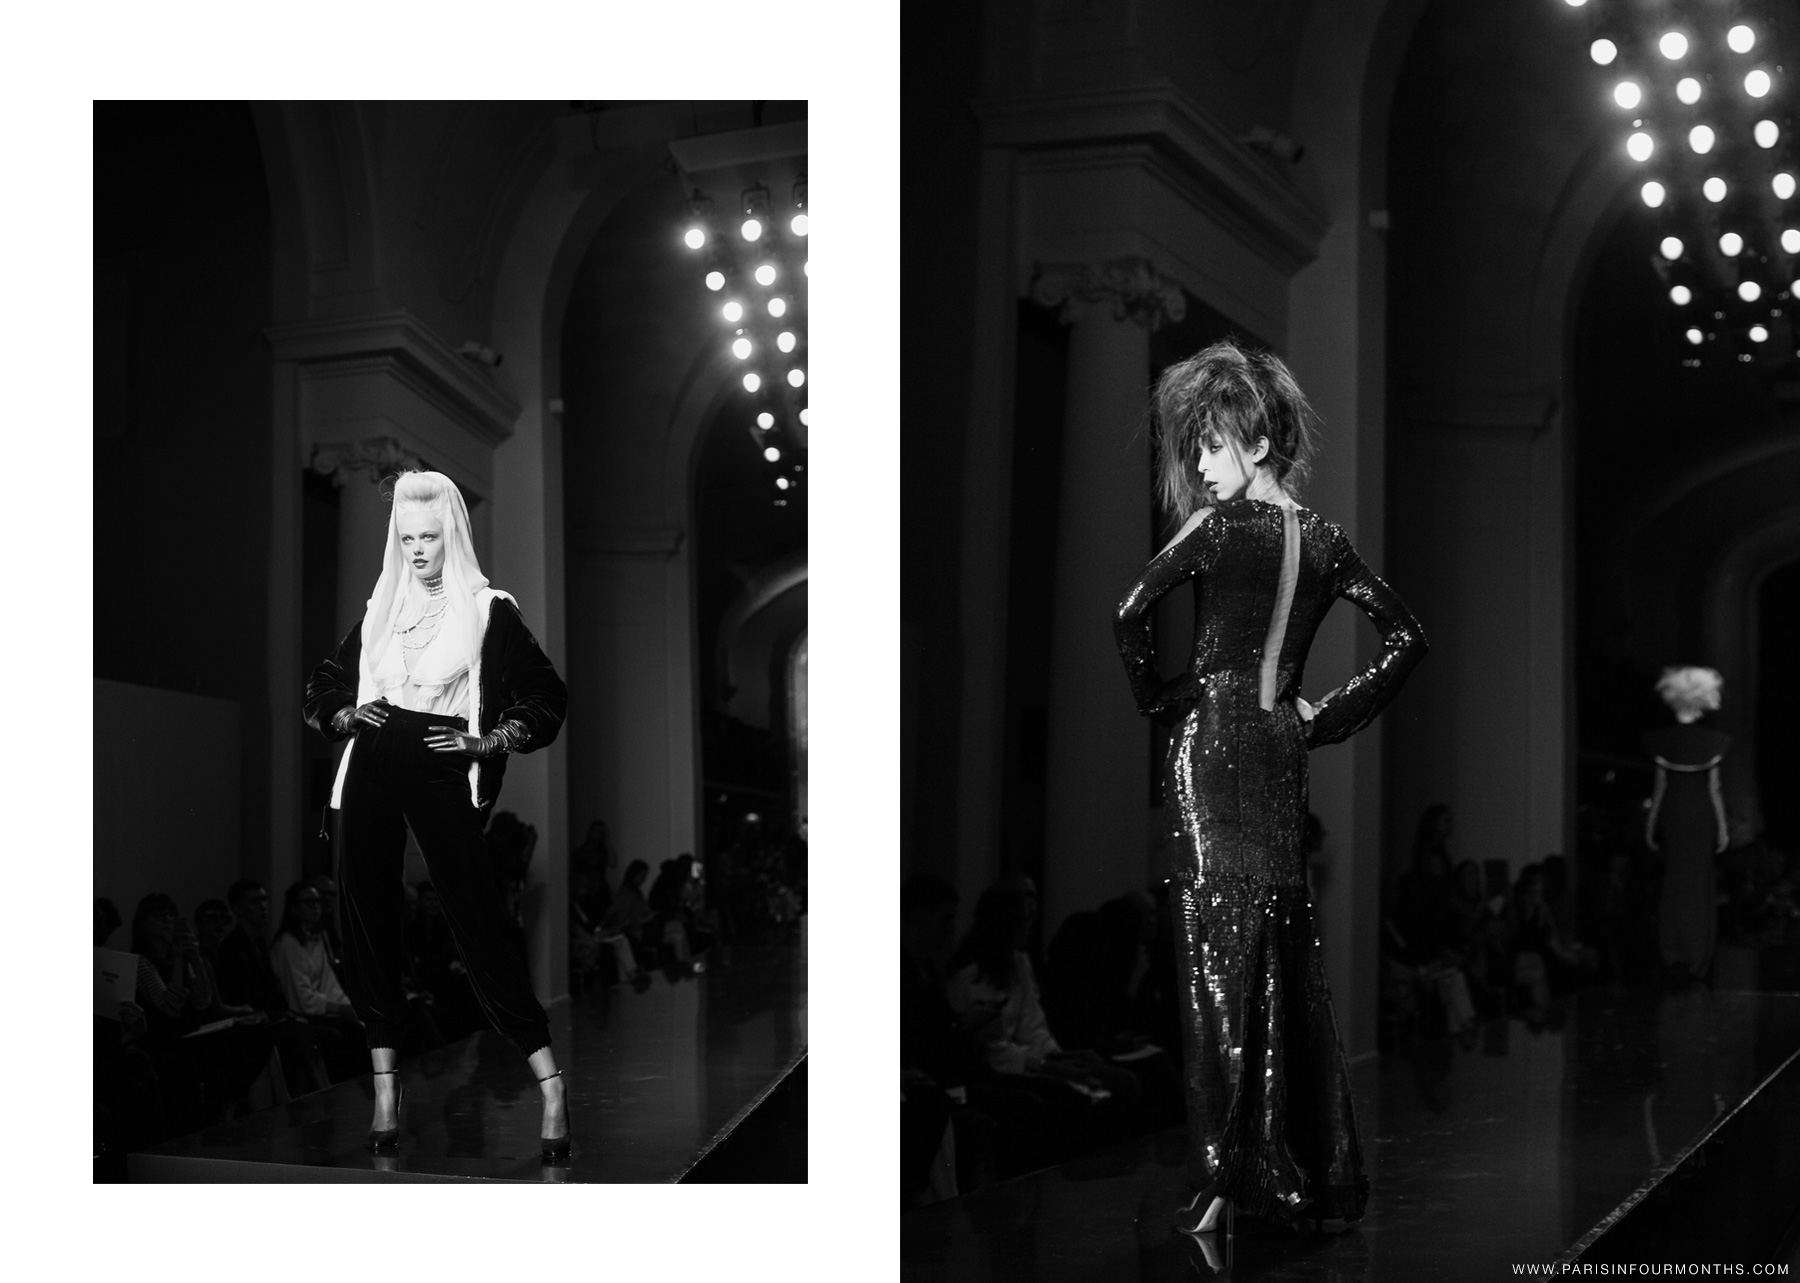 Jean Paul Gaultier haute couture show by Carin Olsson (Paris in Four Months)